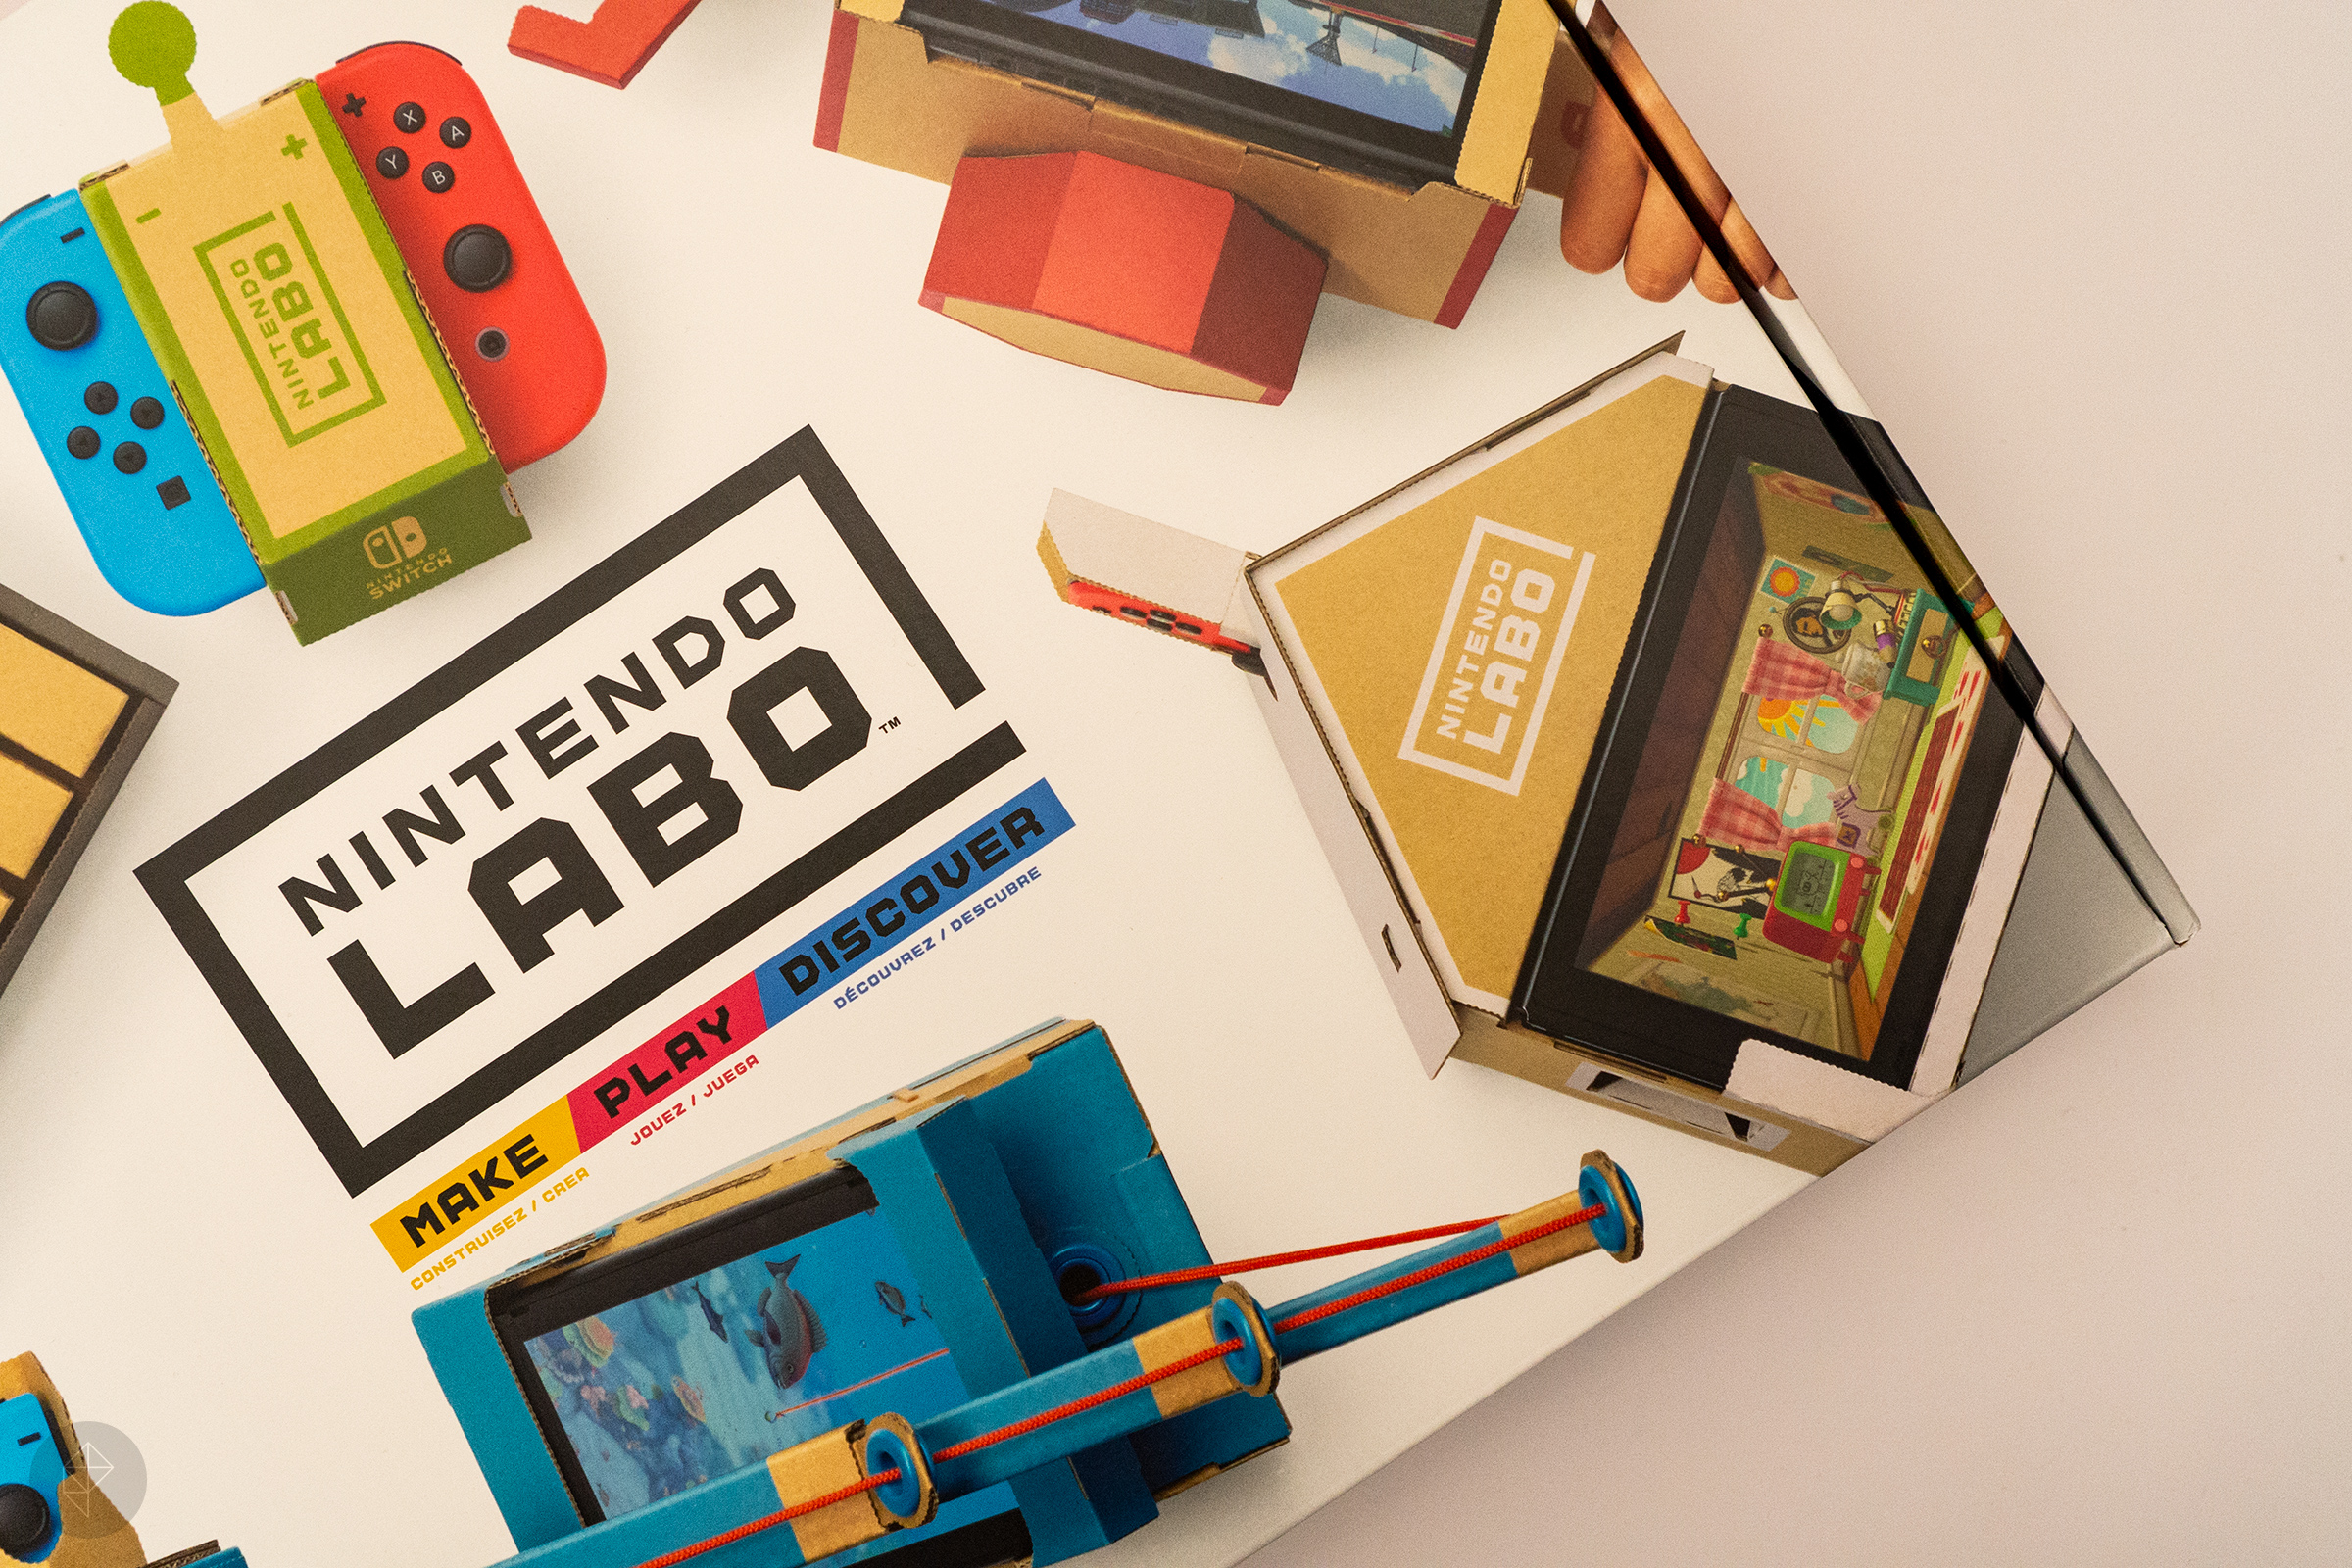 Nintendo Labo - angle photo of box taken from above